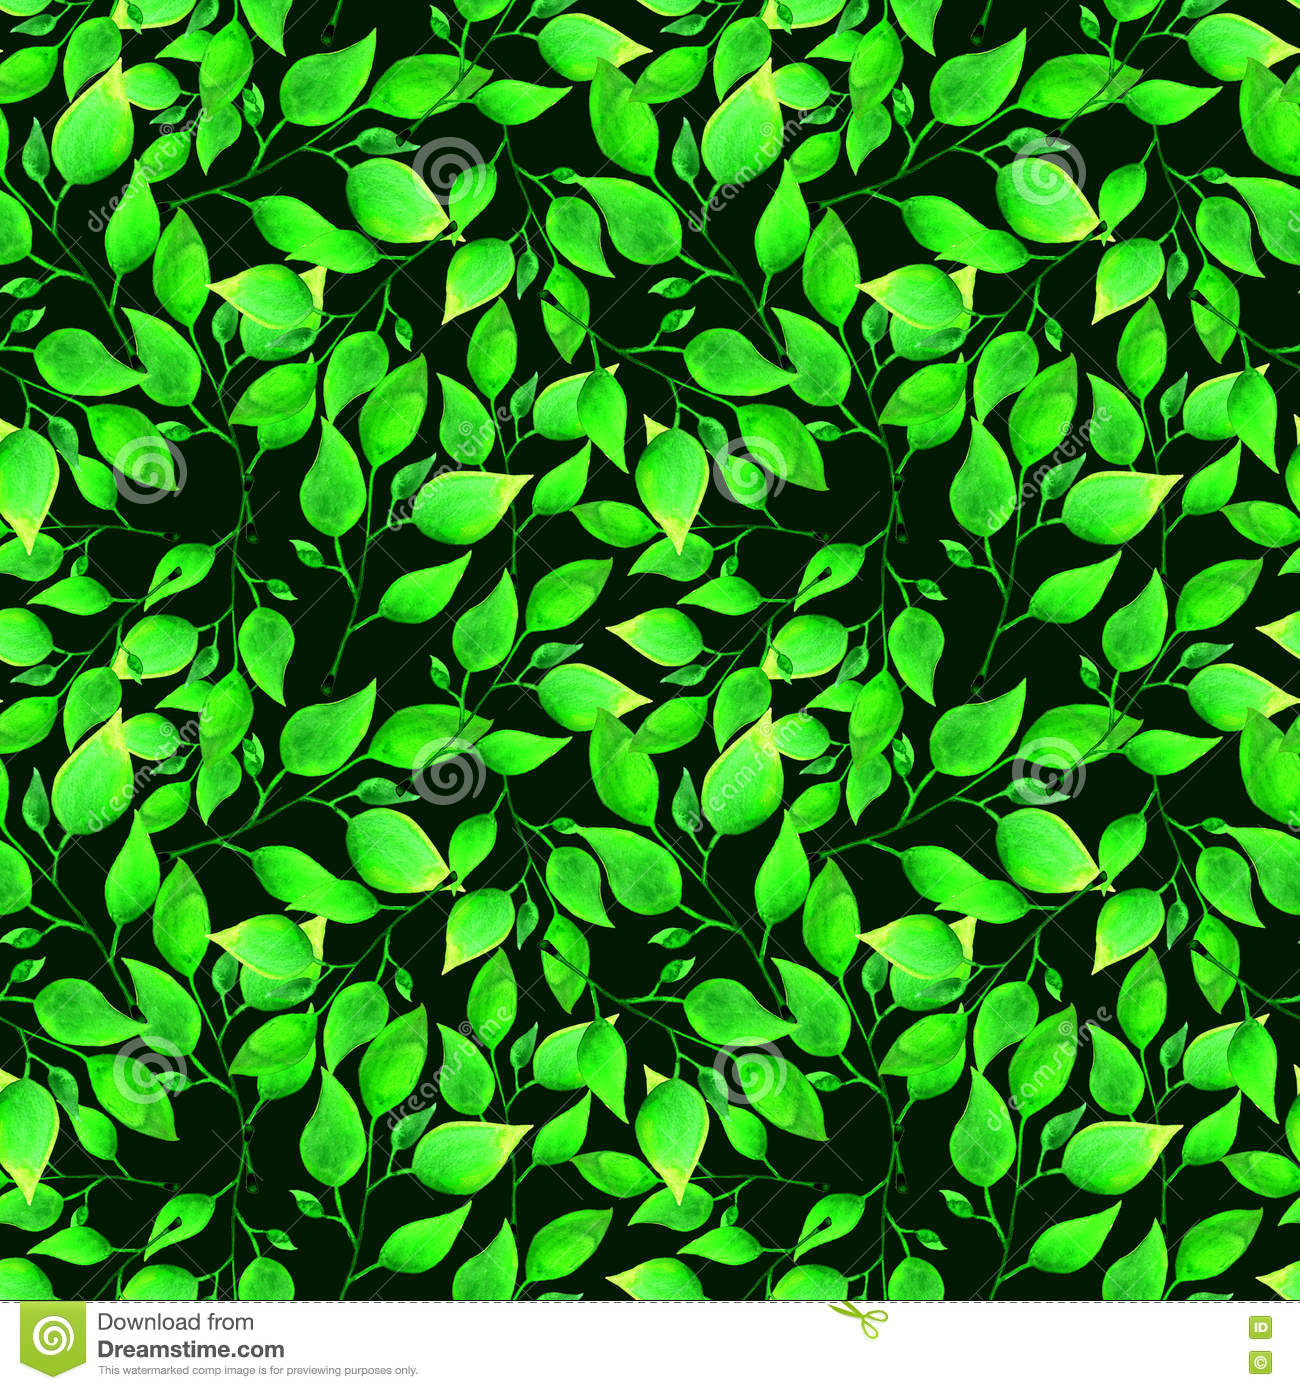 Green Floral Seamless Pattern on Victorian Ornamental Border Brown